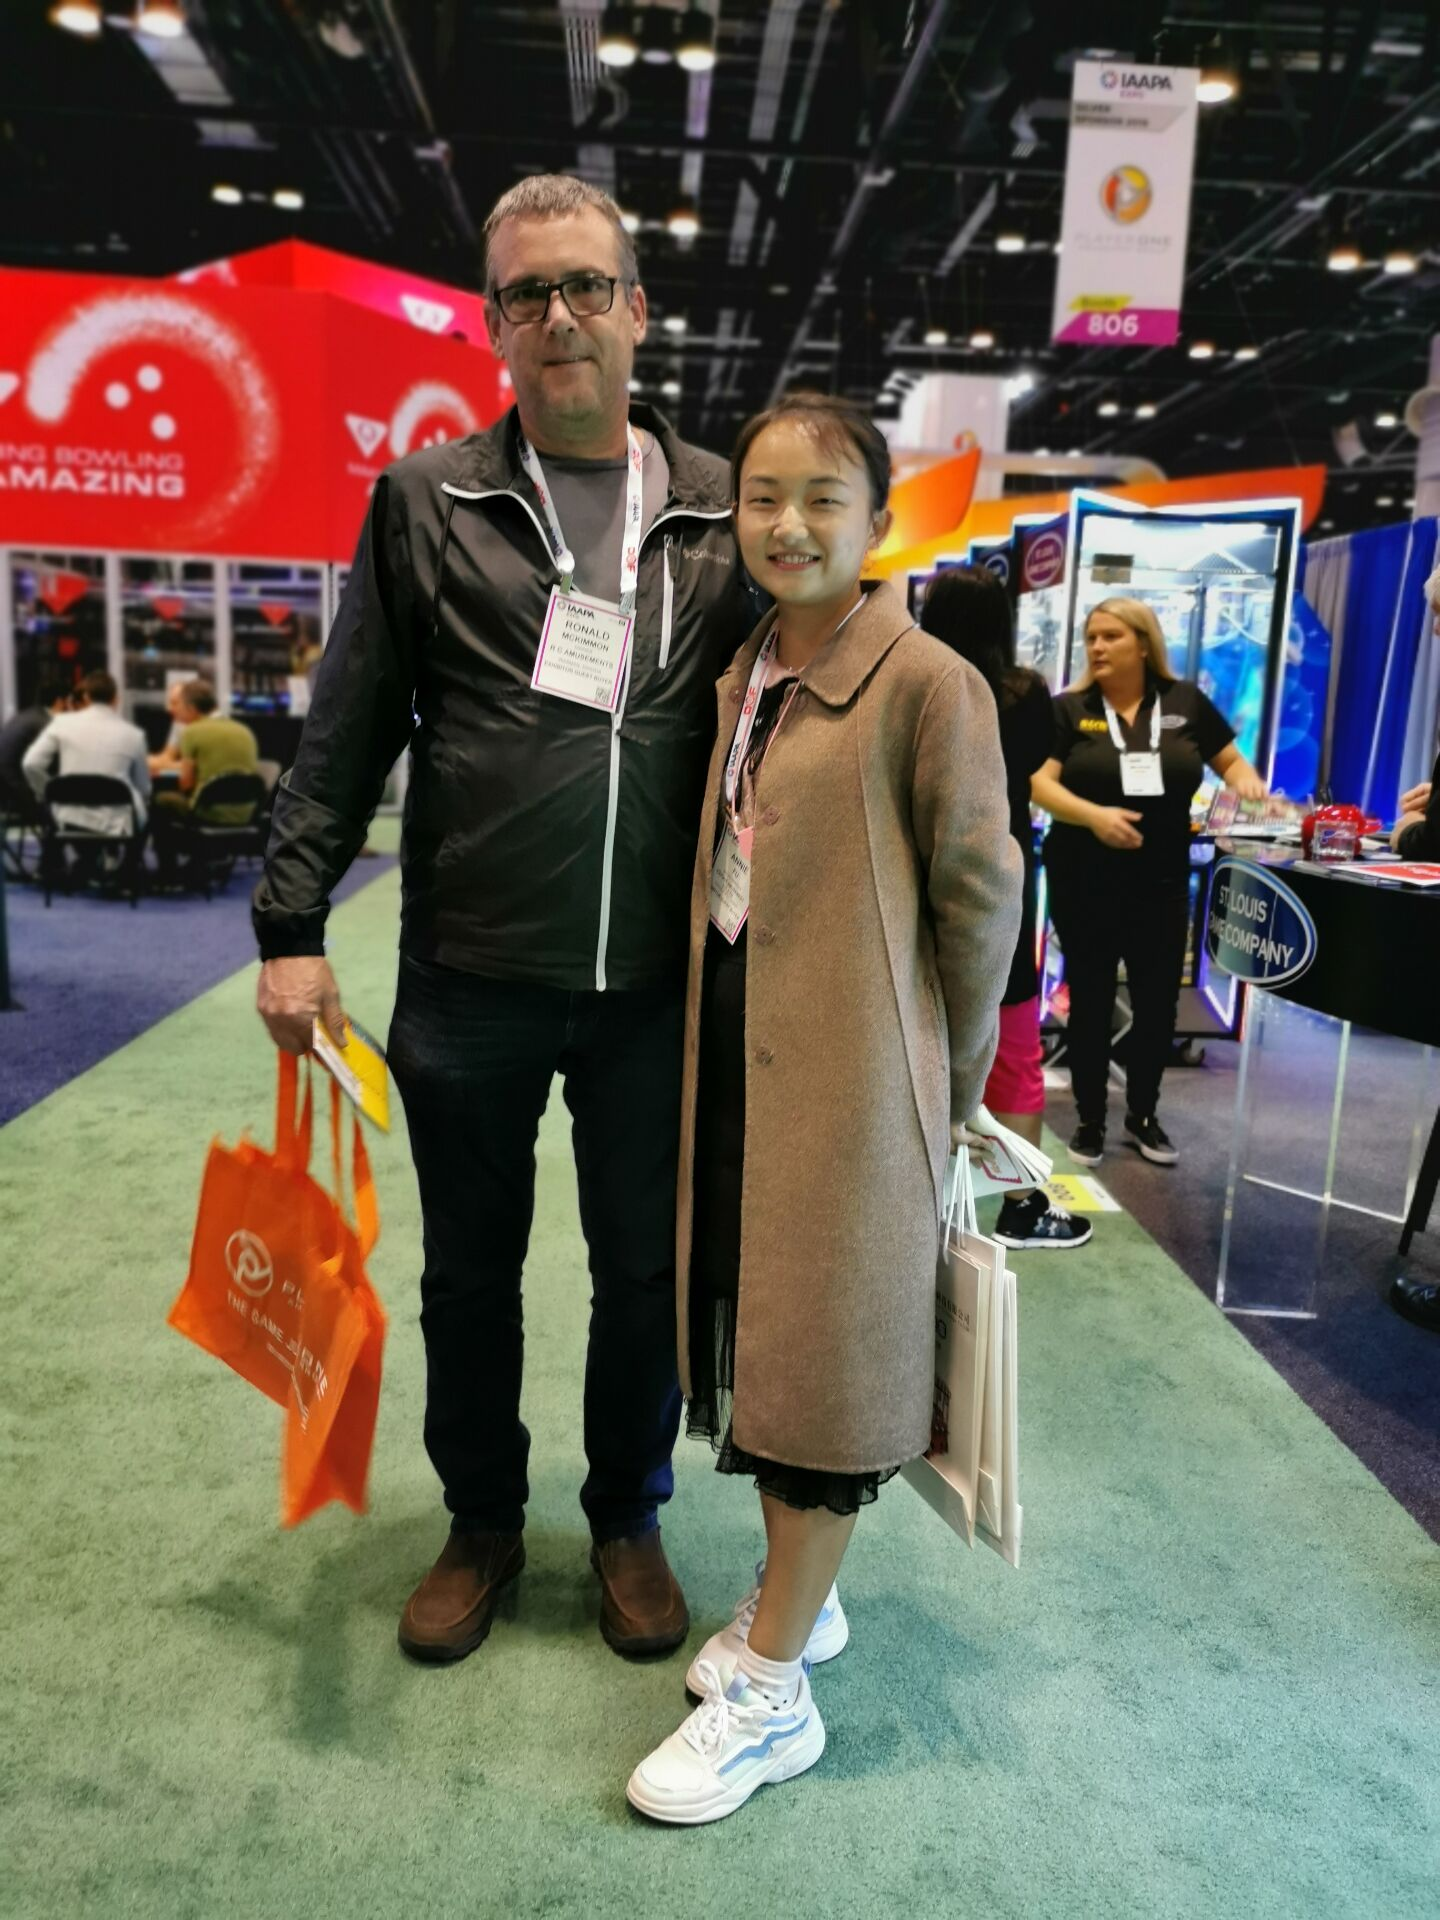 We participated in the IAAPA EXPO